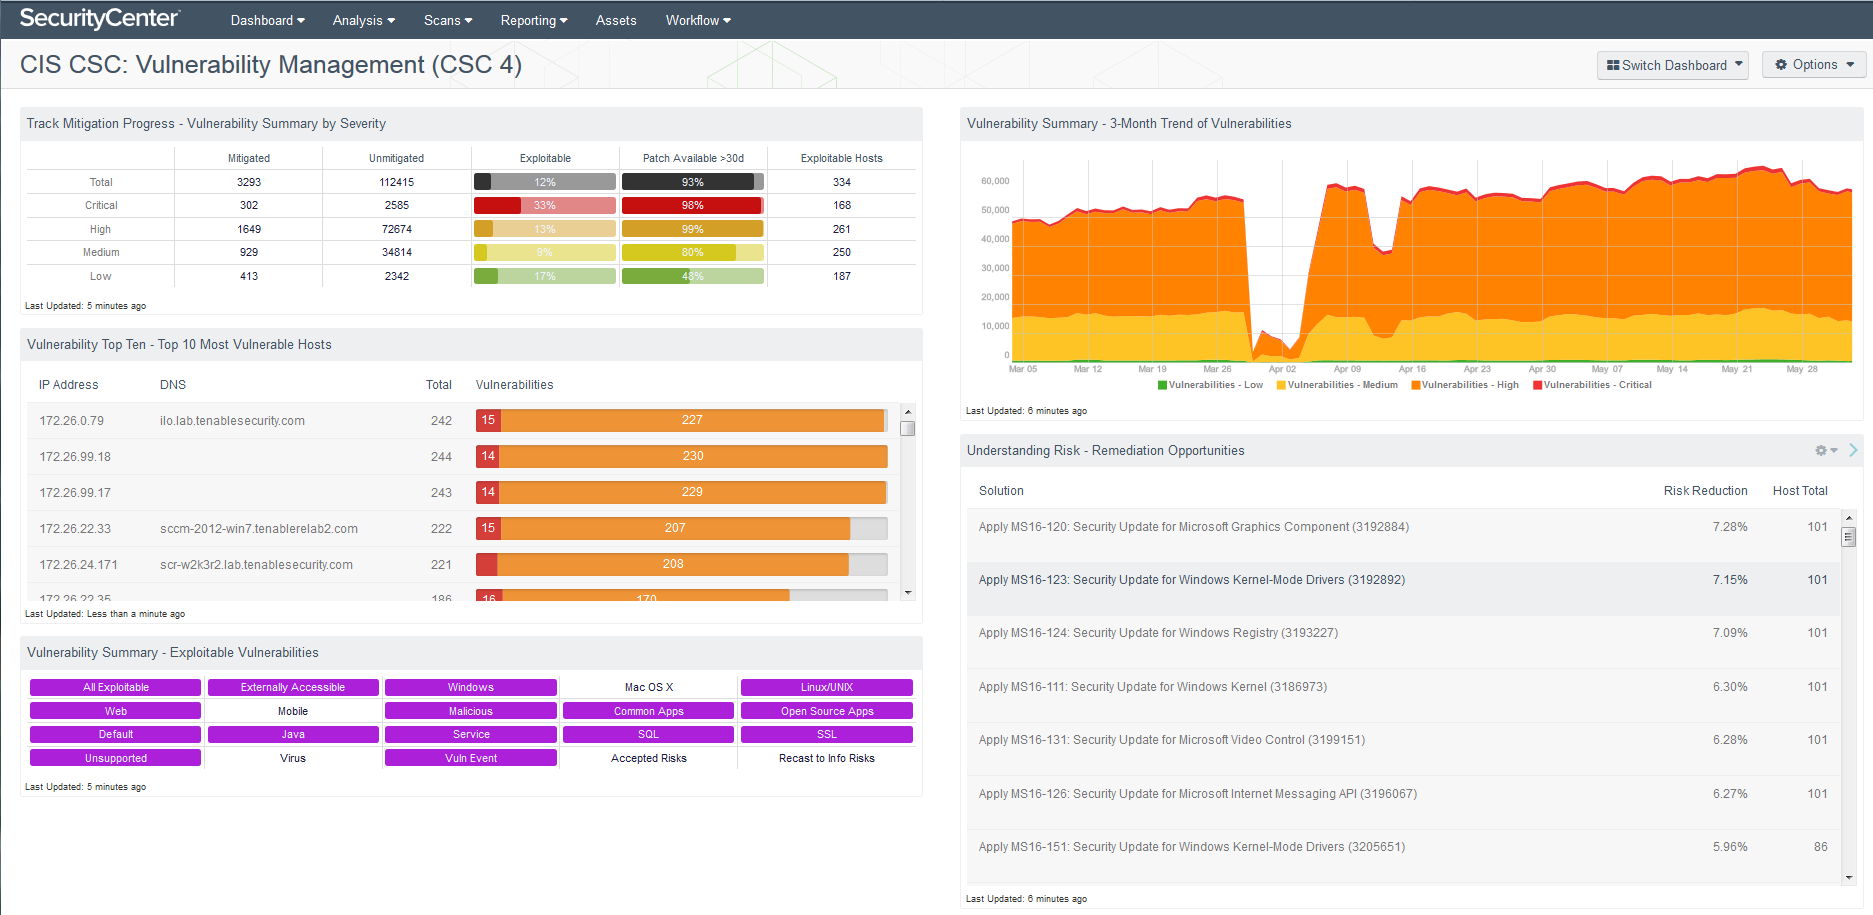 CIS CSC: Vulnerability Management (CSC 4) dashboard